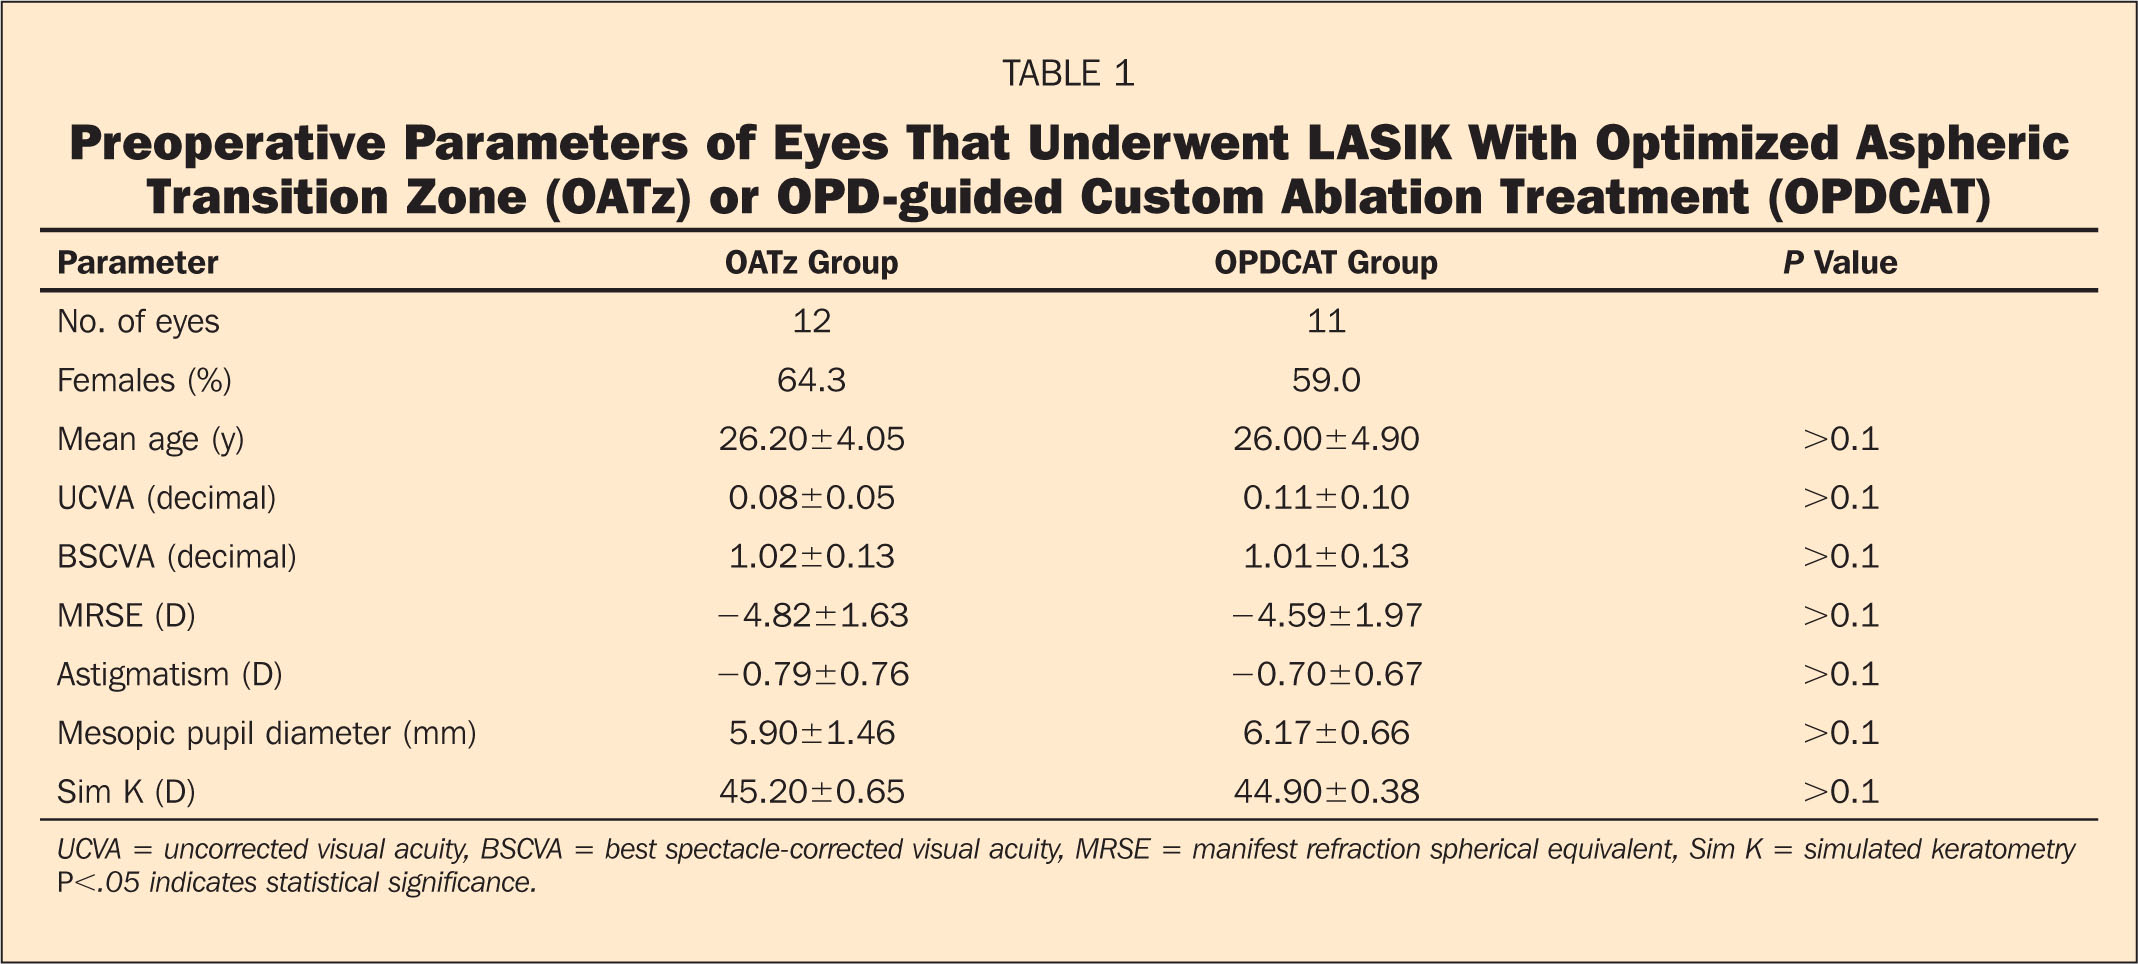 Preoperative Parameters of Eyes that Underwent LASIK with Optimized Aspheric Transition Zone (OATz) or OPD-Guided Custom Ablation Treatment (OPDCAT)